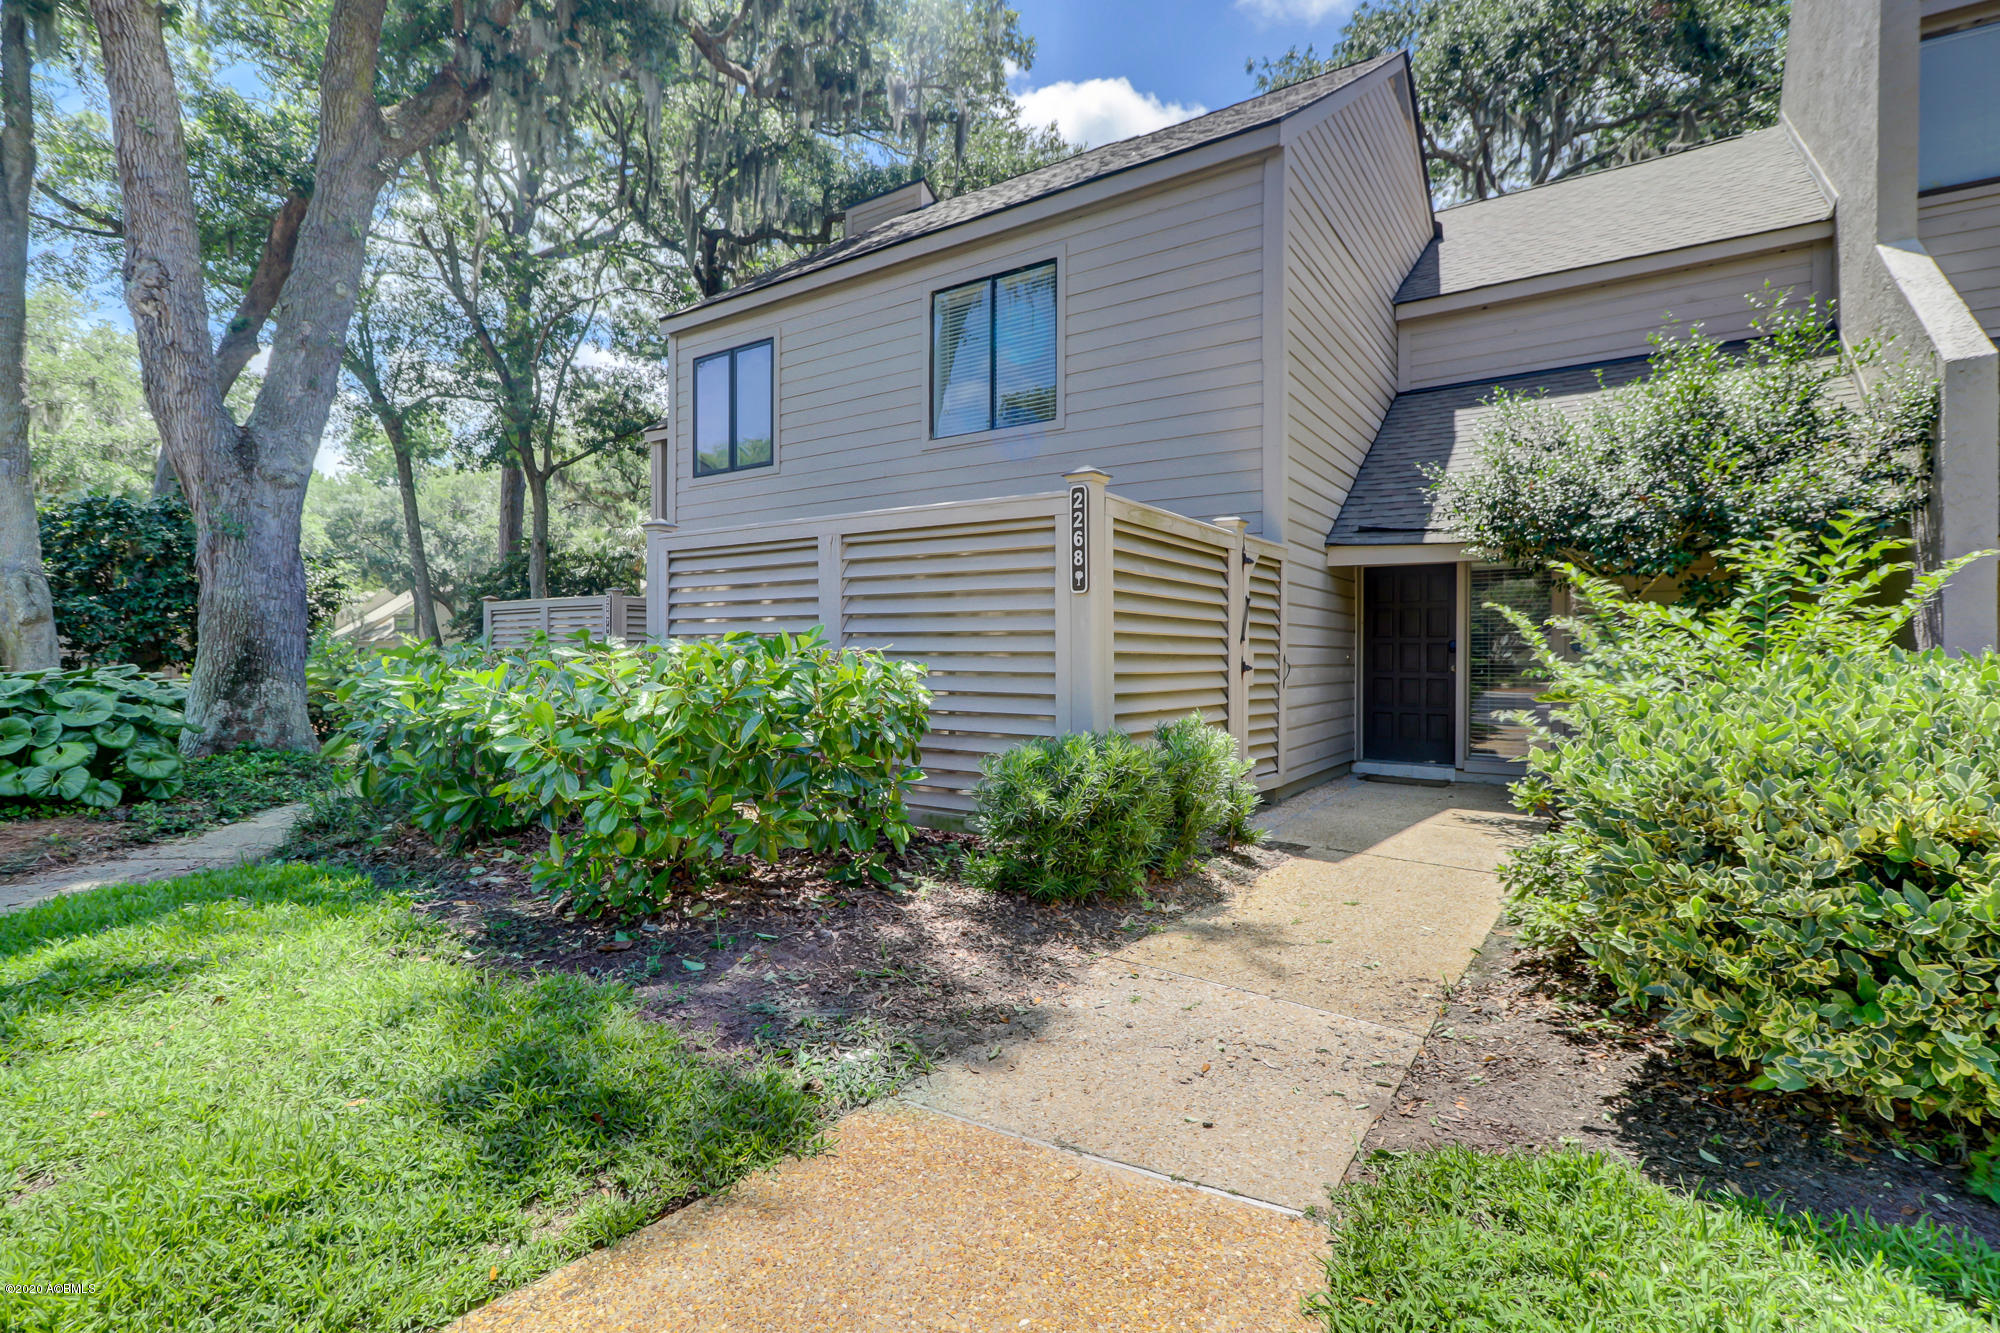 Photo of 107 Lighthouse Road #2268, Hilton Head Island, SC 29928